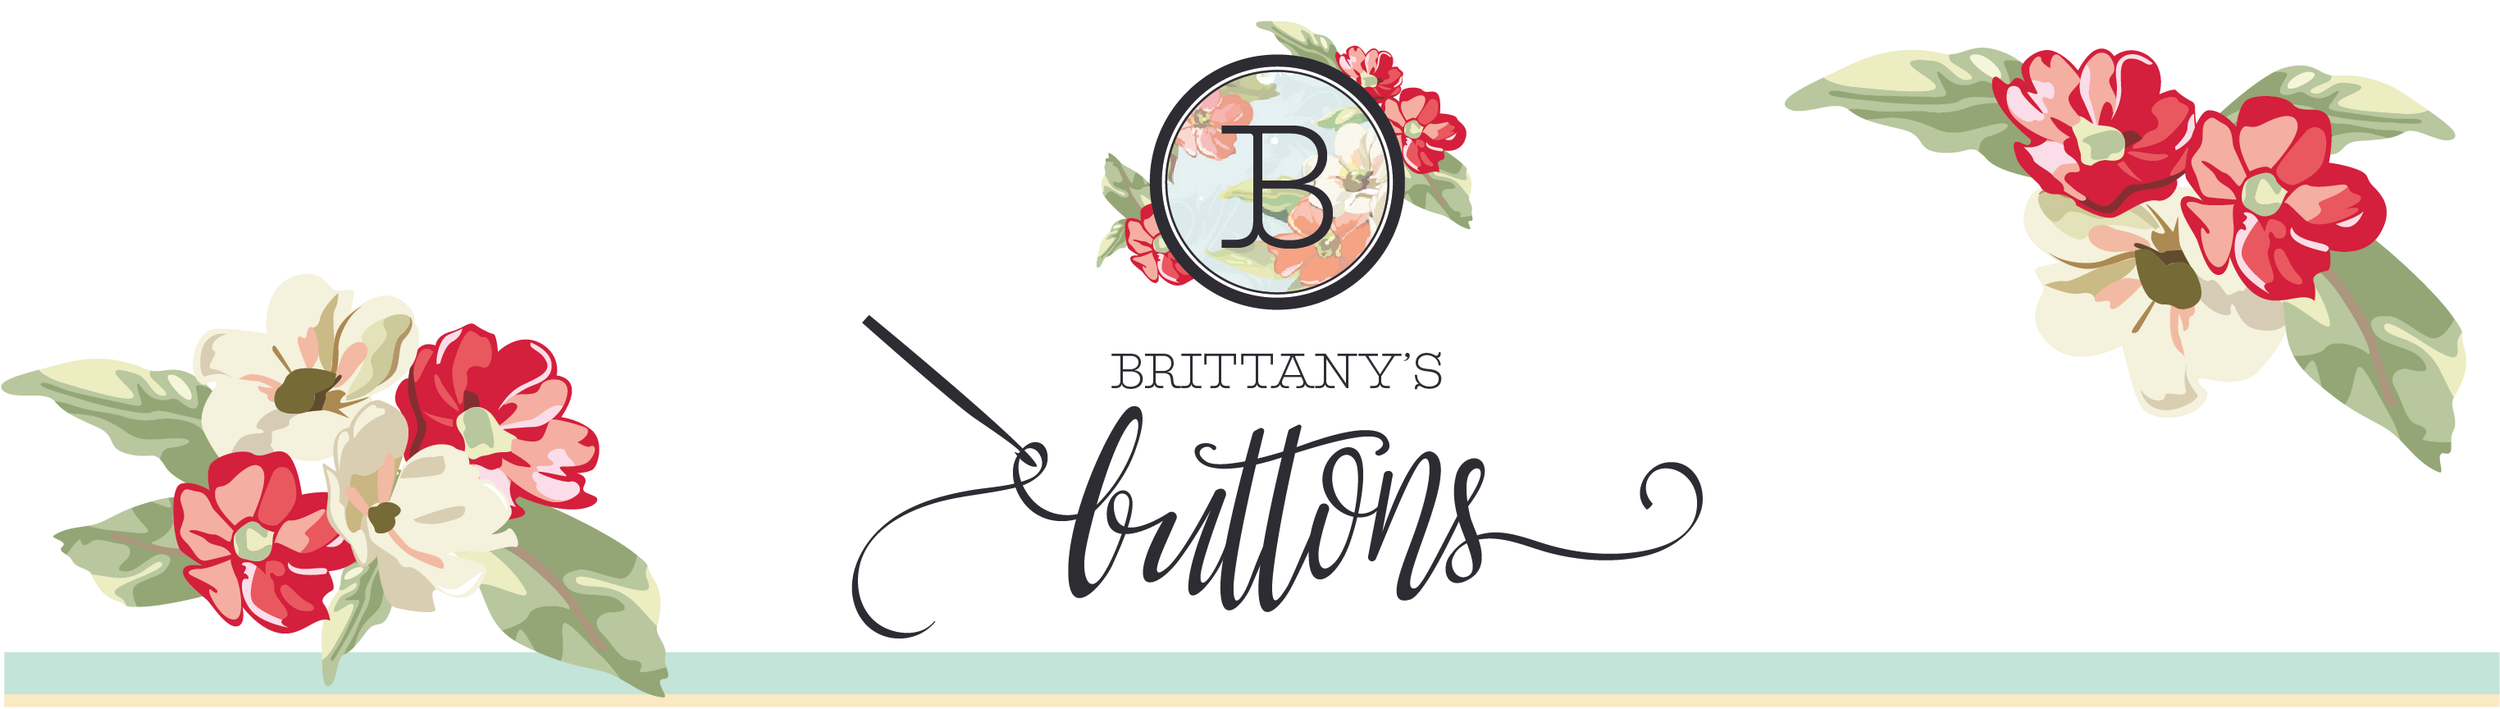 Brittany's Buttons Branding